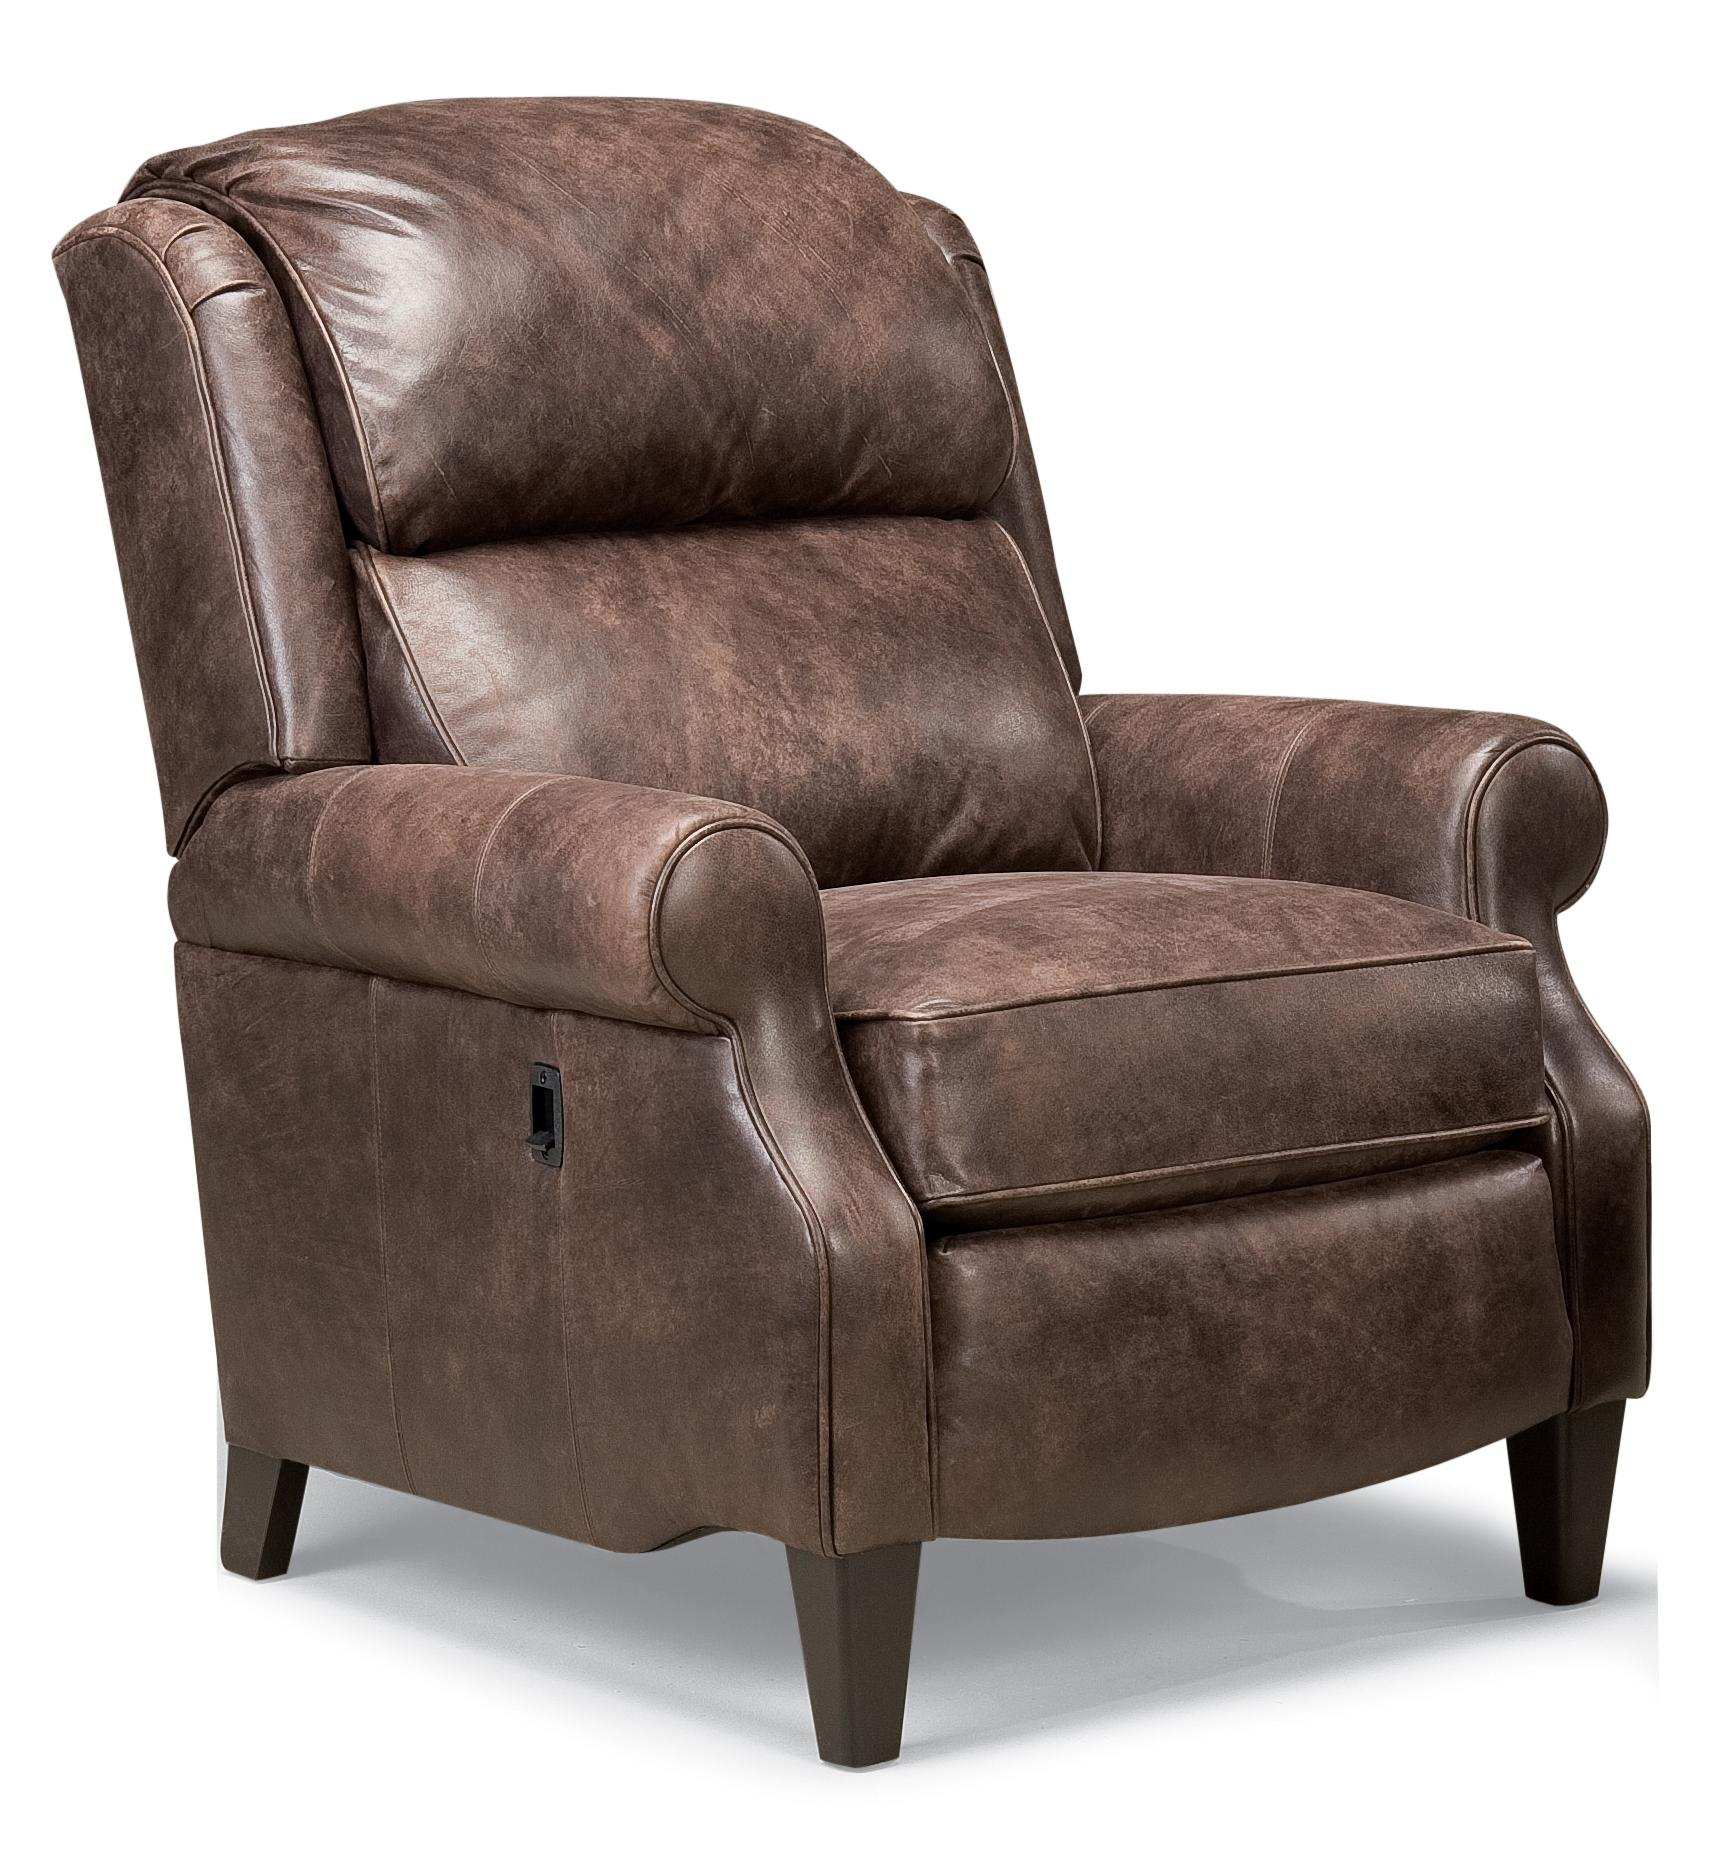 Recliners  Tilt-Back Chair by Smith Brothers at Wayside Furniture